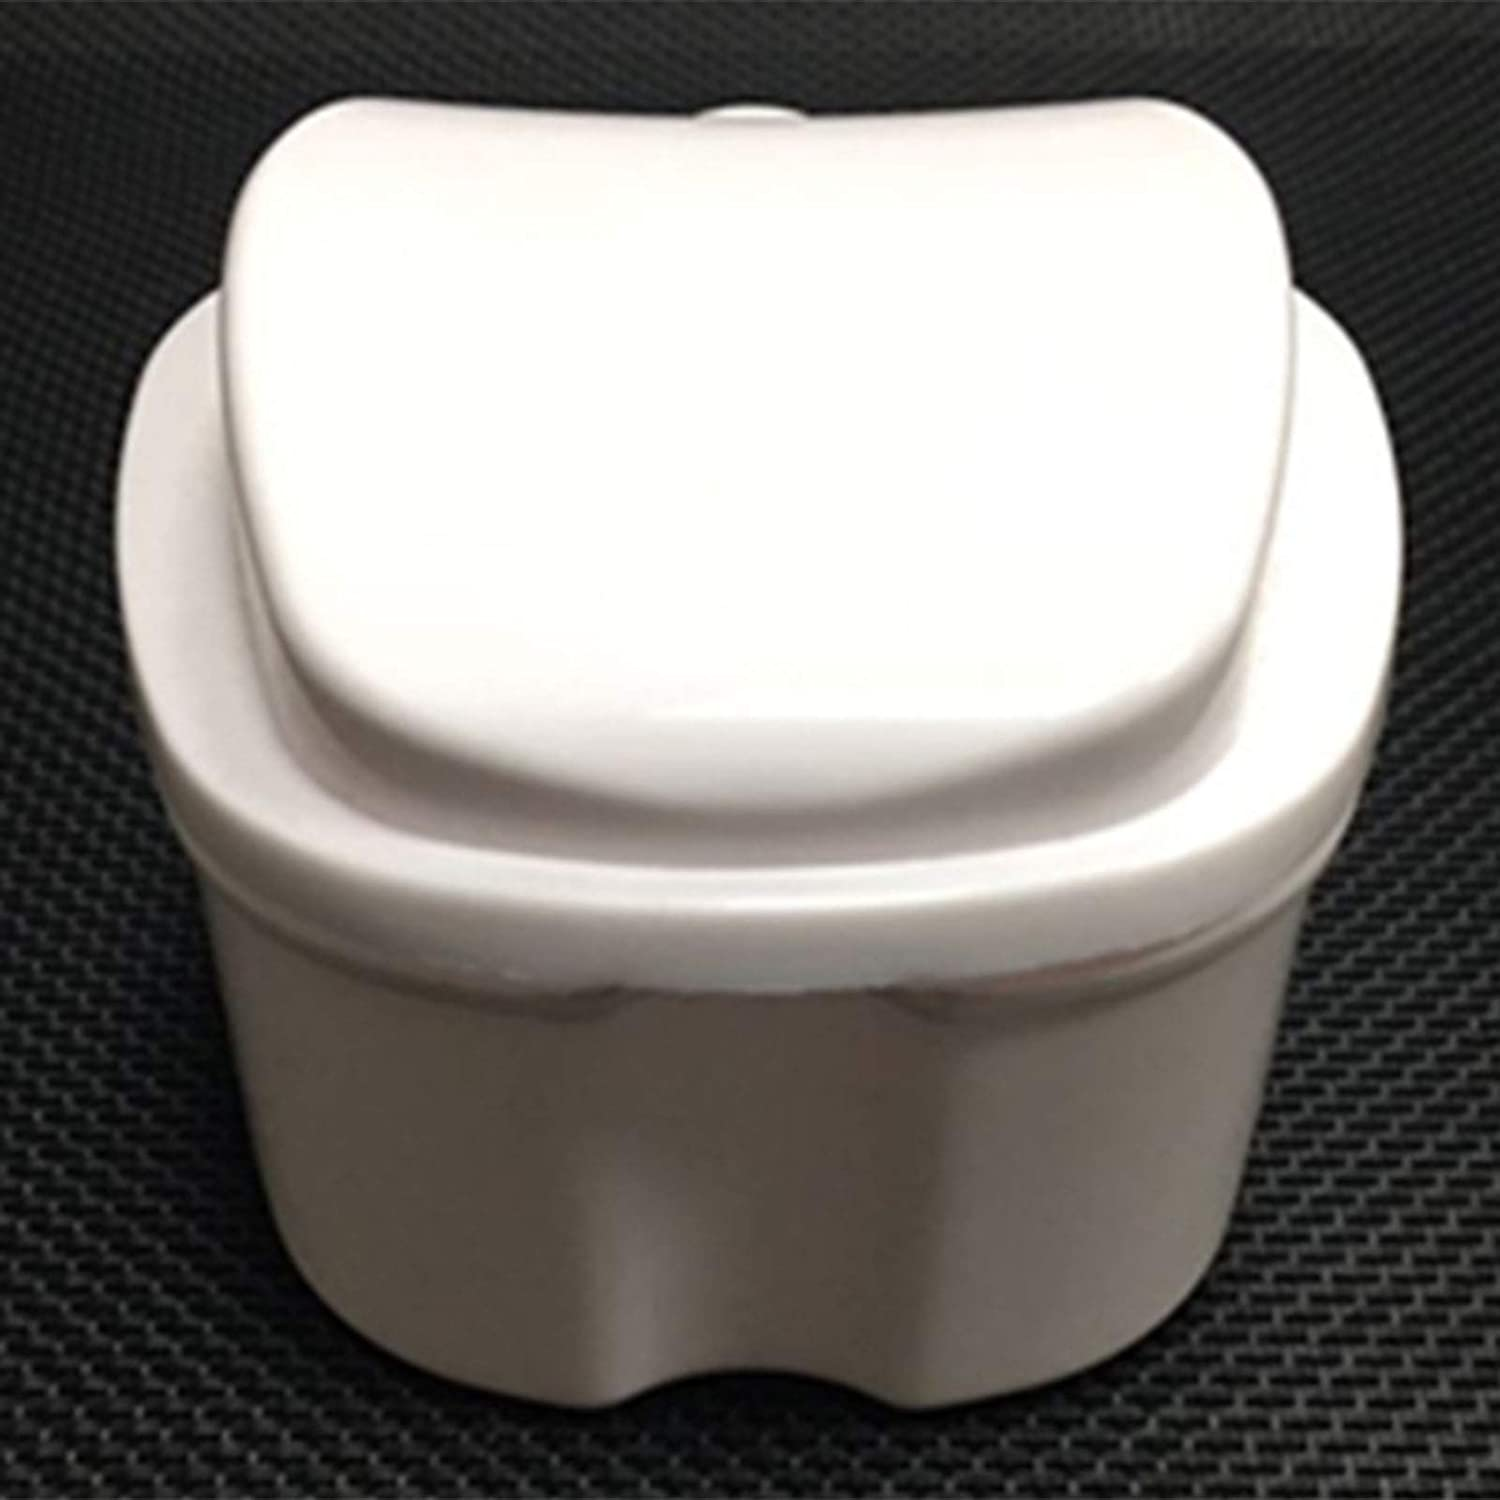 Denture Opening large release sale Case Cup with False Strainer Bath Box San Jose Mall